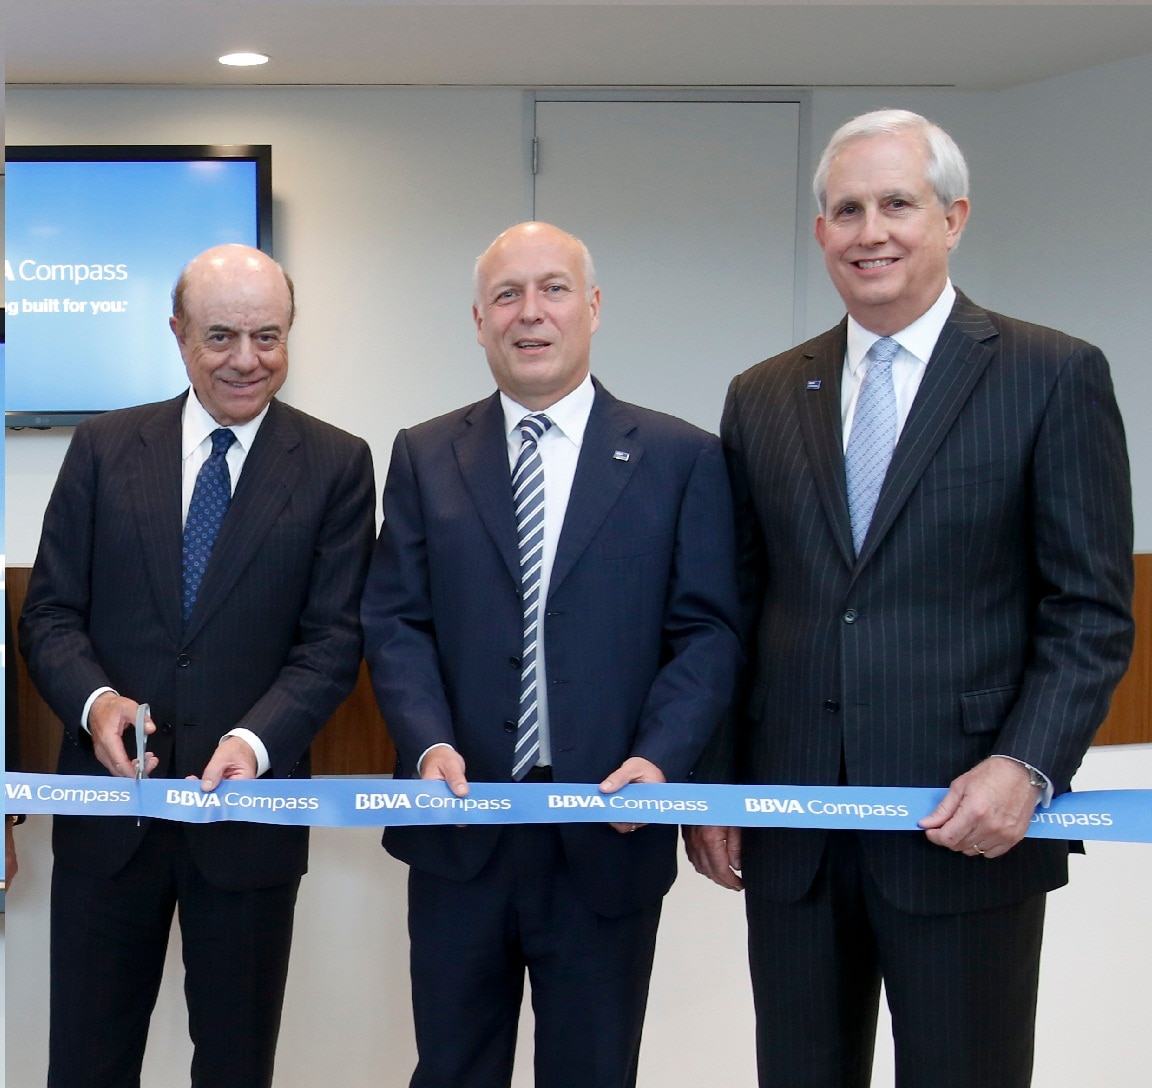 From left, Francisco Gonzalez, Manolo Sanchez, and Jim Heslop perform a ribbon cutting at the BBVA in Houston 2013